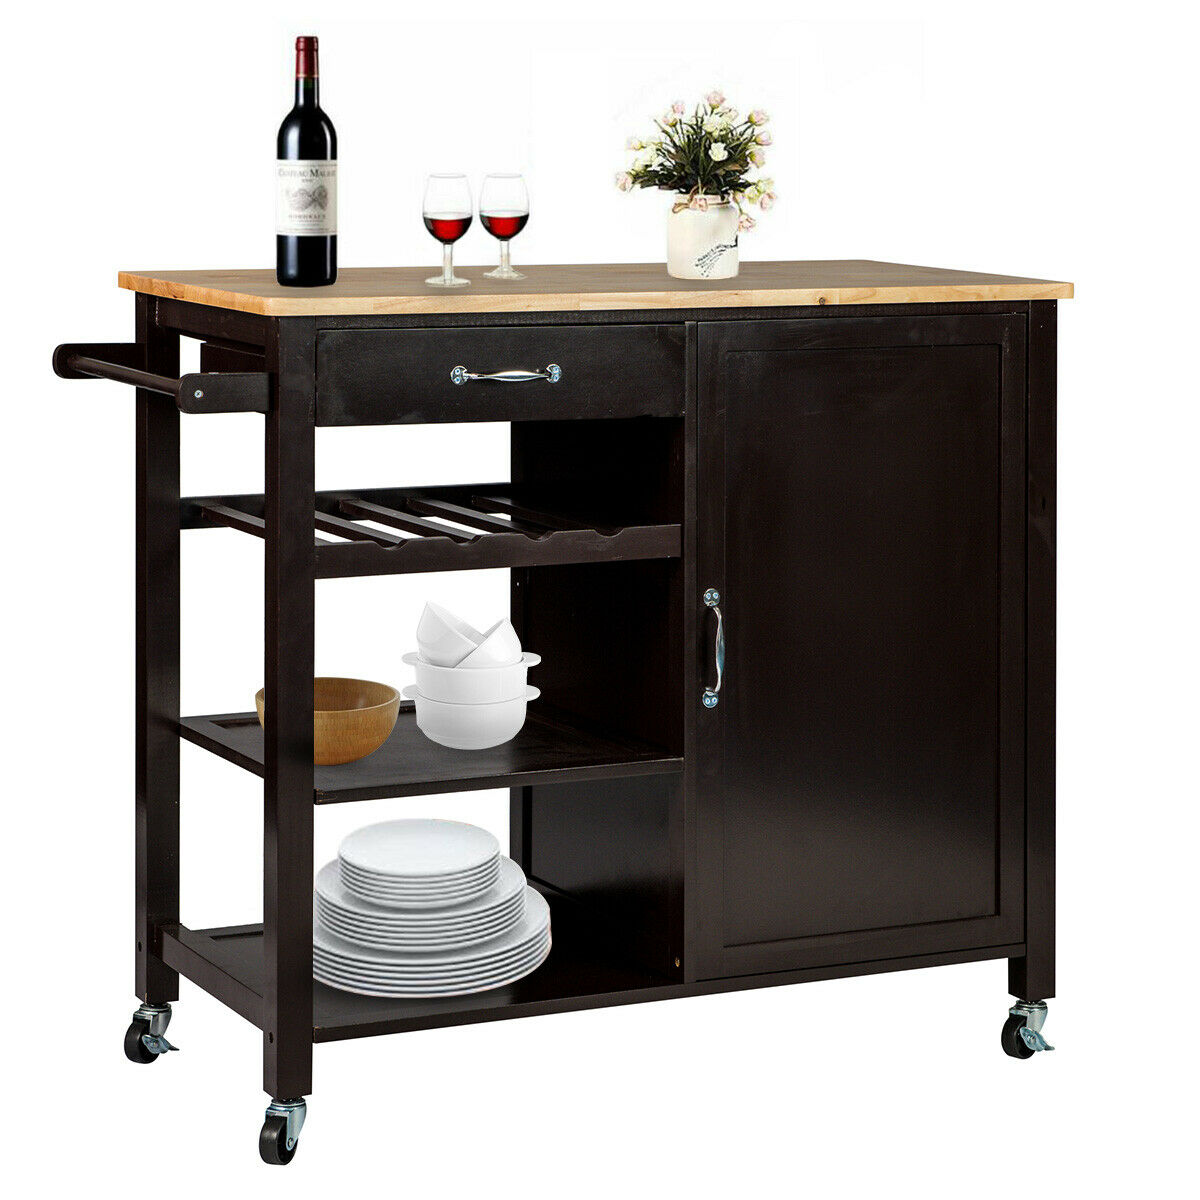 Wooden Kitchen Island Trolley Cart Utility Dining Storage Cabinet Serving Shelf 1 Of 6free Shipping